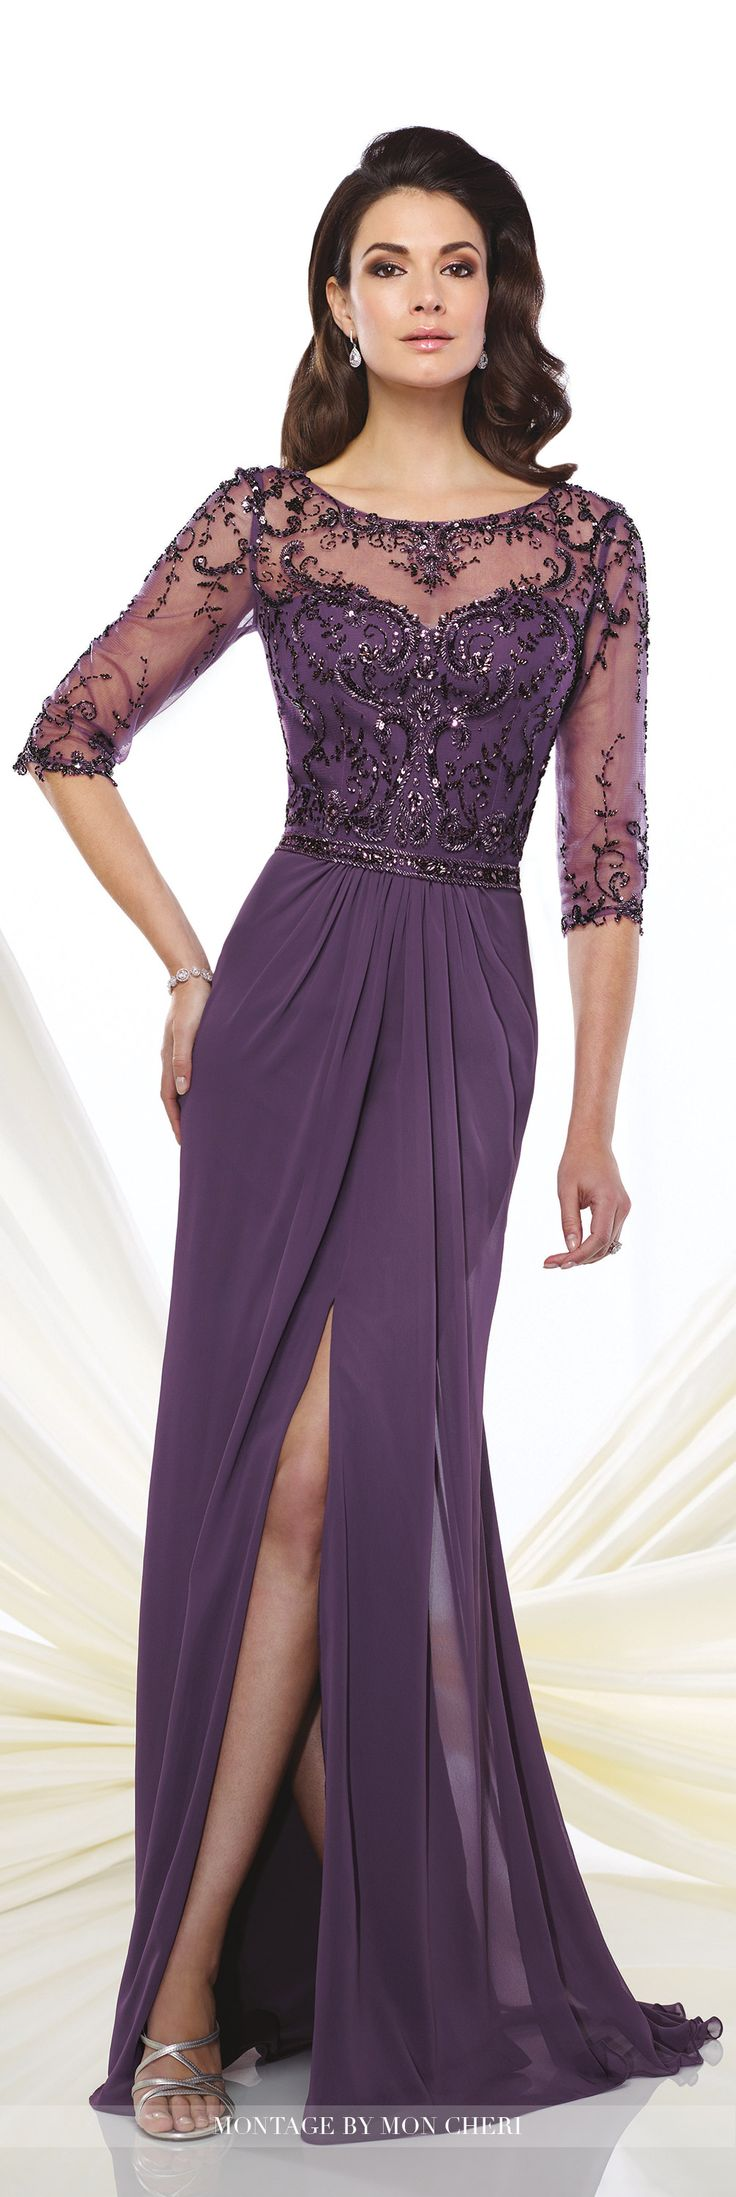 341 best Formal Wear in Shades of Purple images on Pinterest ...